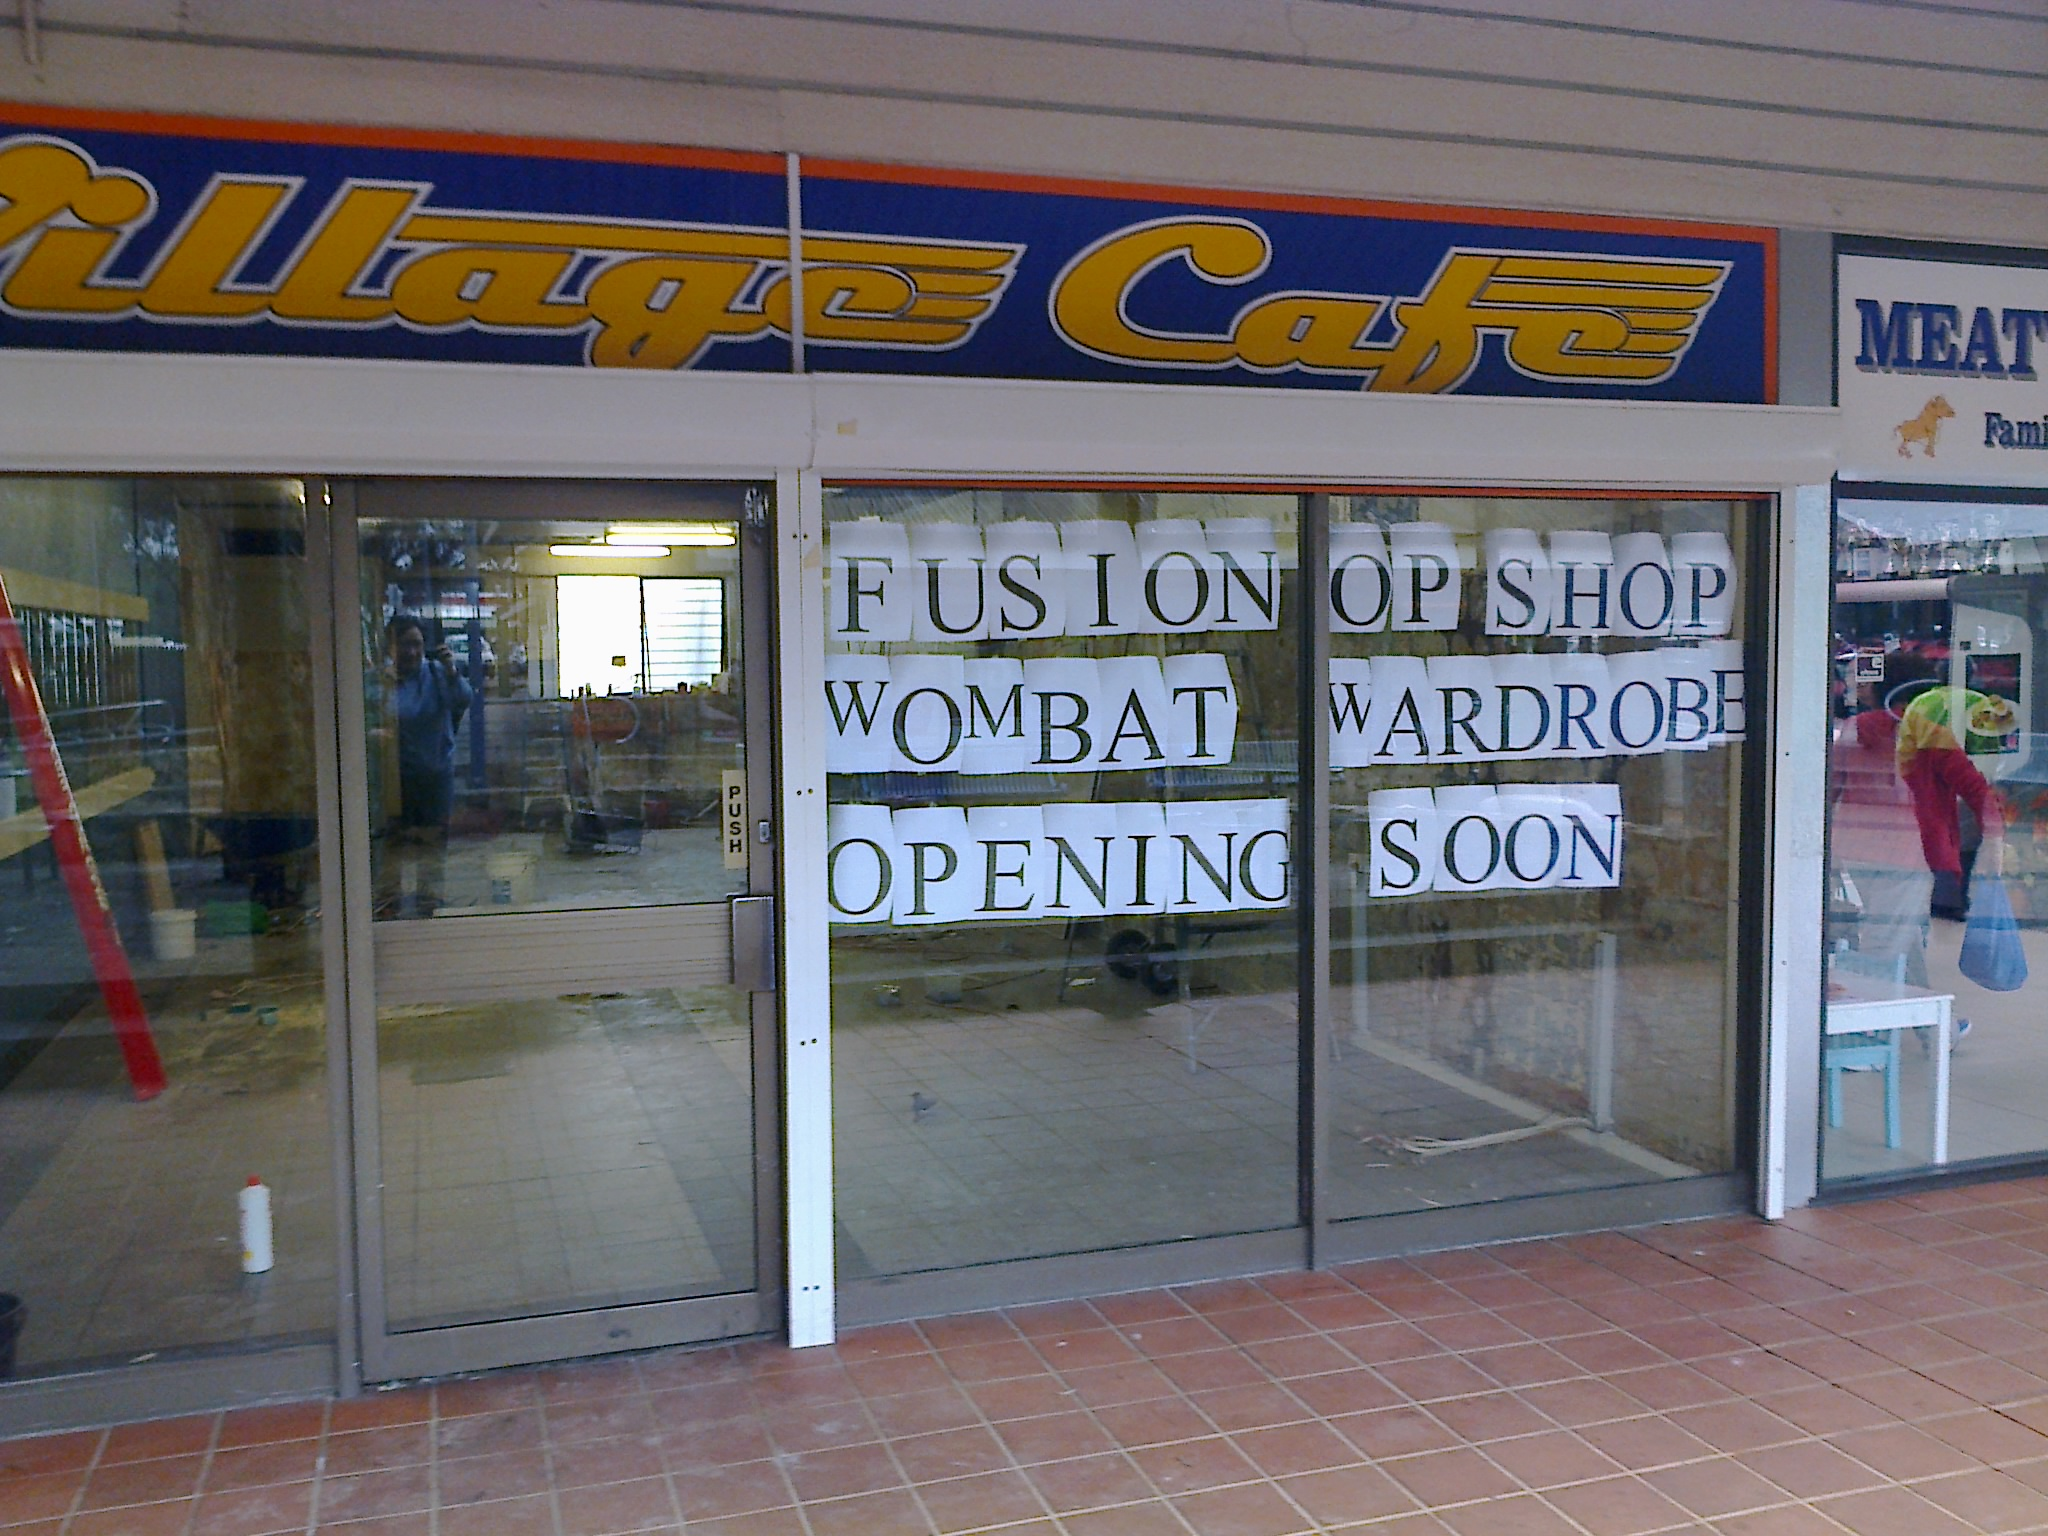 Wombat Wardrobe is moving on August 18th and becoming Fusion Op Shop